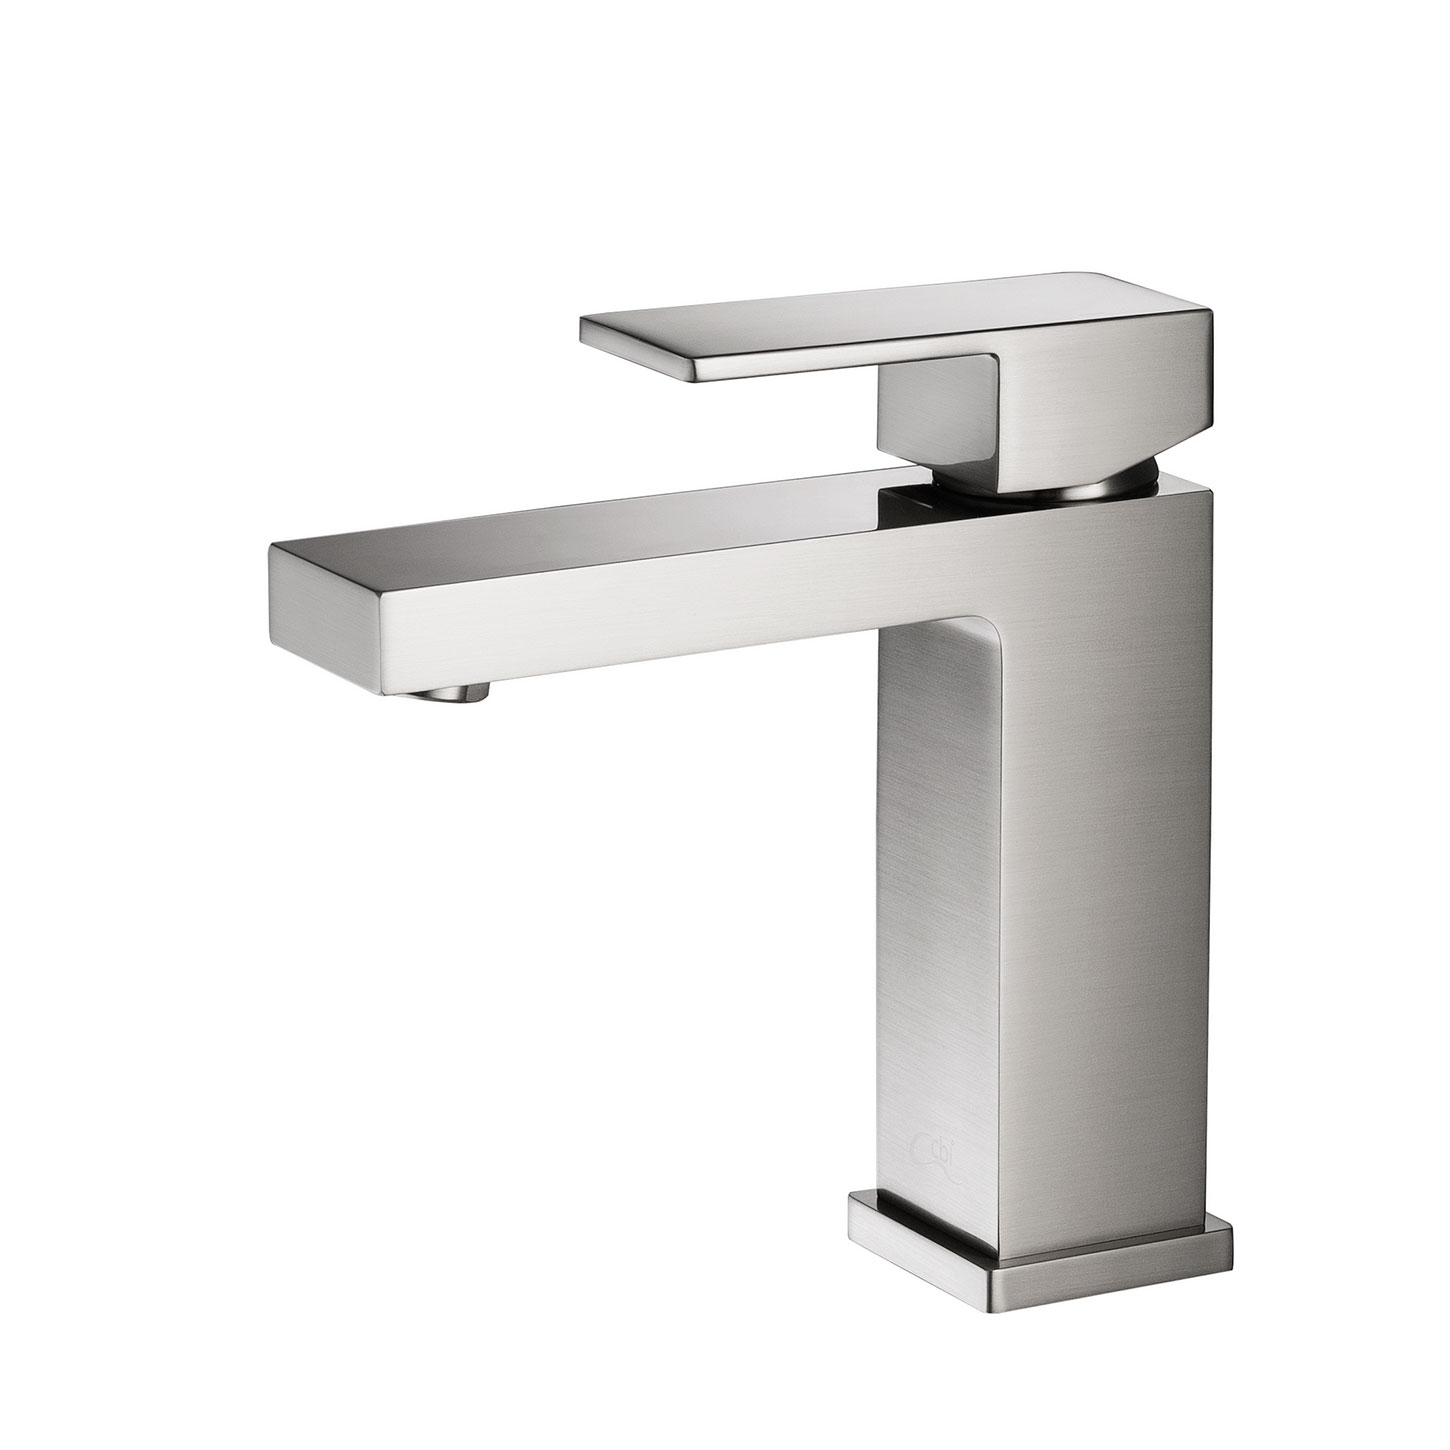 CBI Hudson Single Handle Bathroom Faucet In Brushed Nickel AV BF03BN